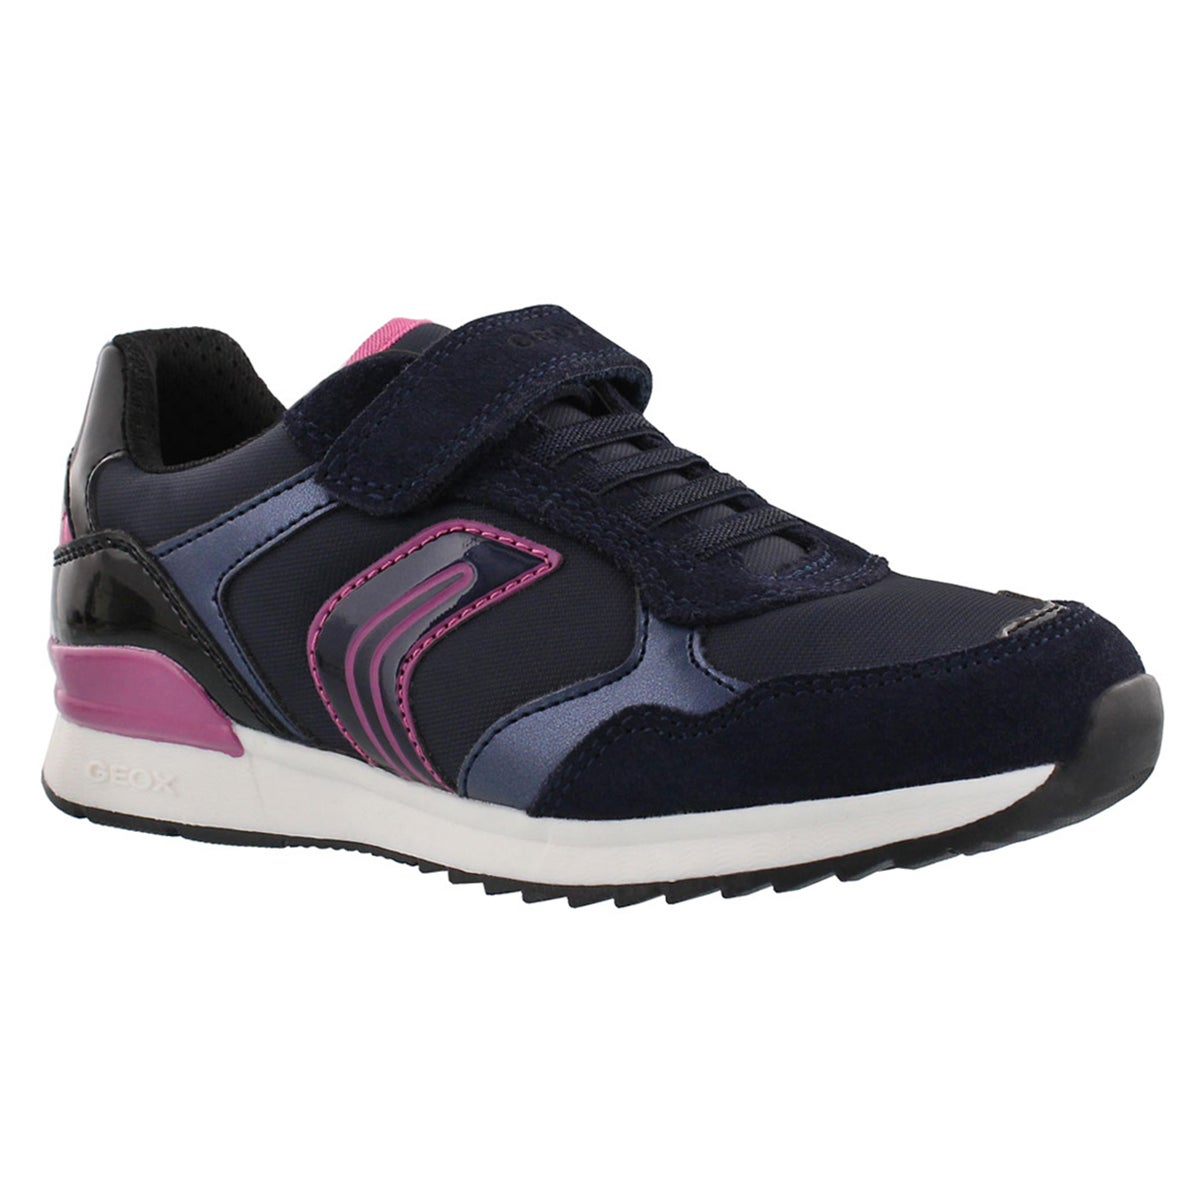 Grls Maisie dark navy athletic sneaker